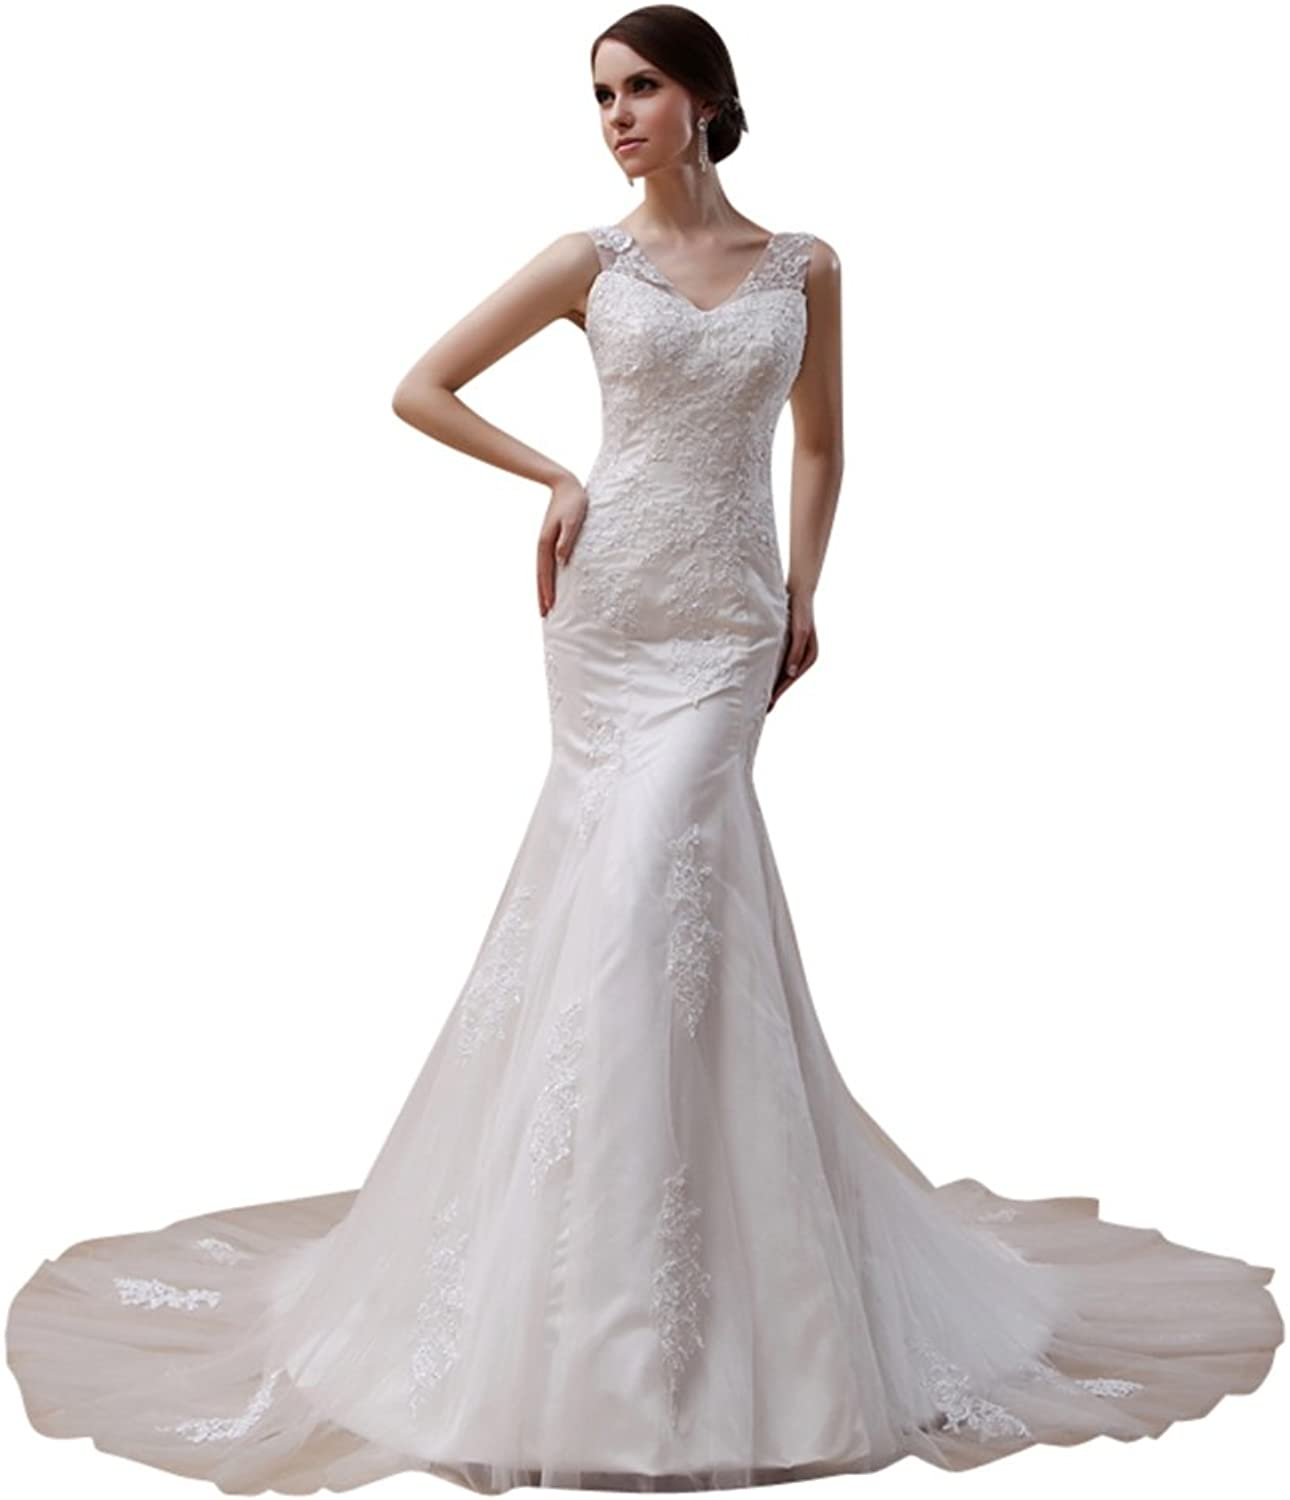 HUICHENGYAO Women's V Neck Appliques Mermaid Wedding Dress Beaded Bridal Gown